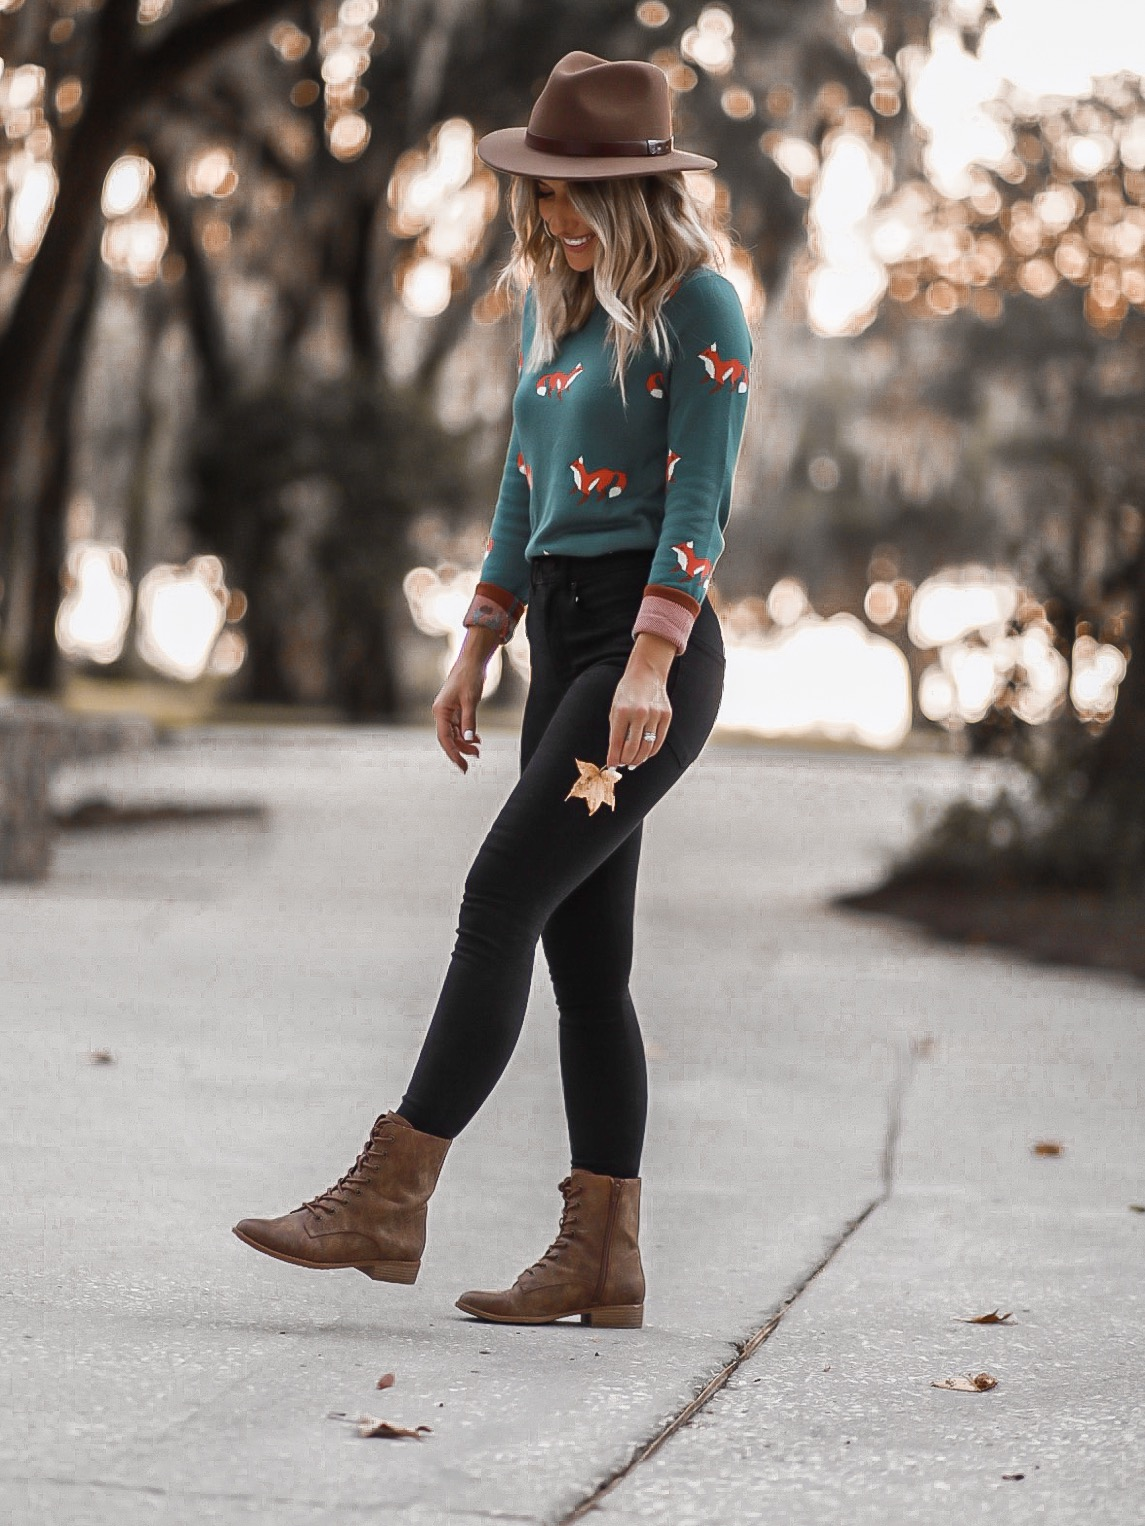 FALL OUTFIT IDEA FOX SWEATER MODCLOTH LAURA BEVERLIN6